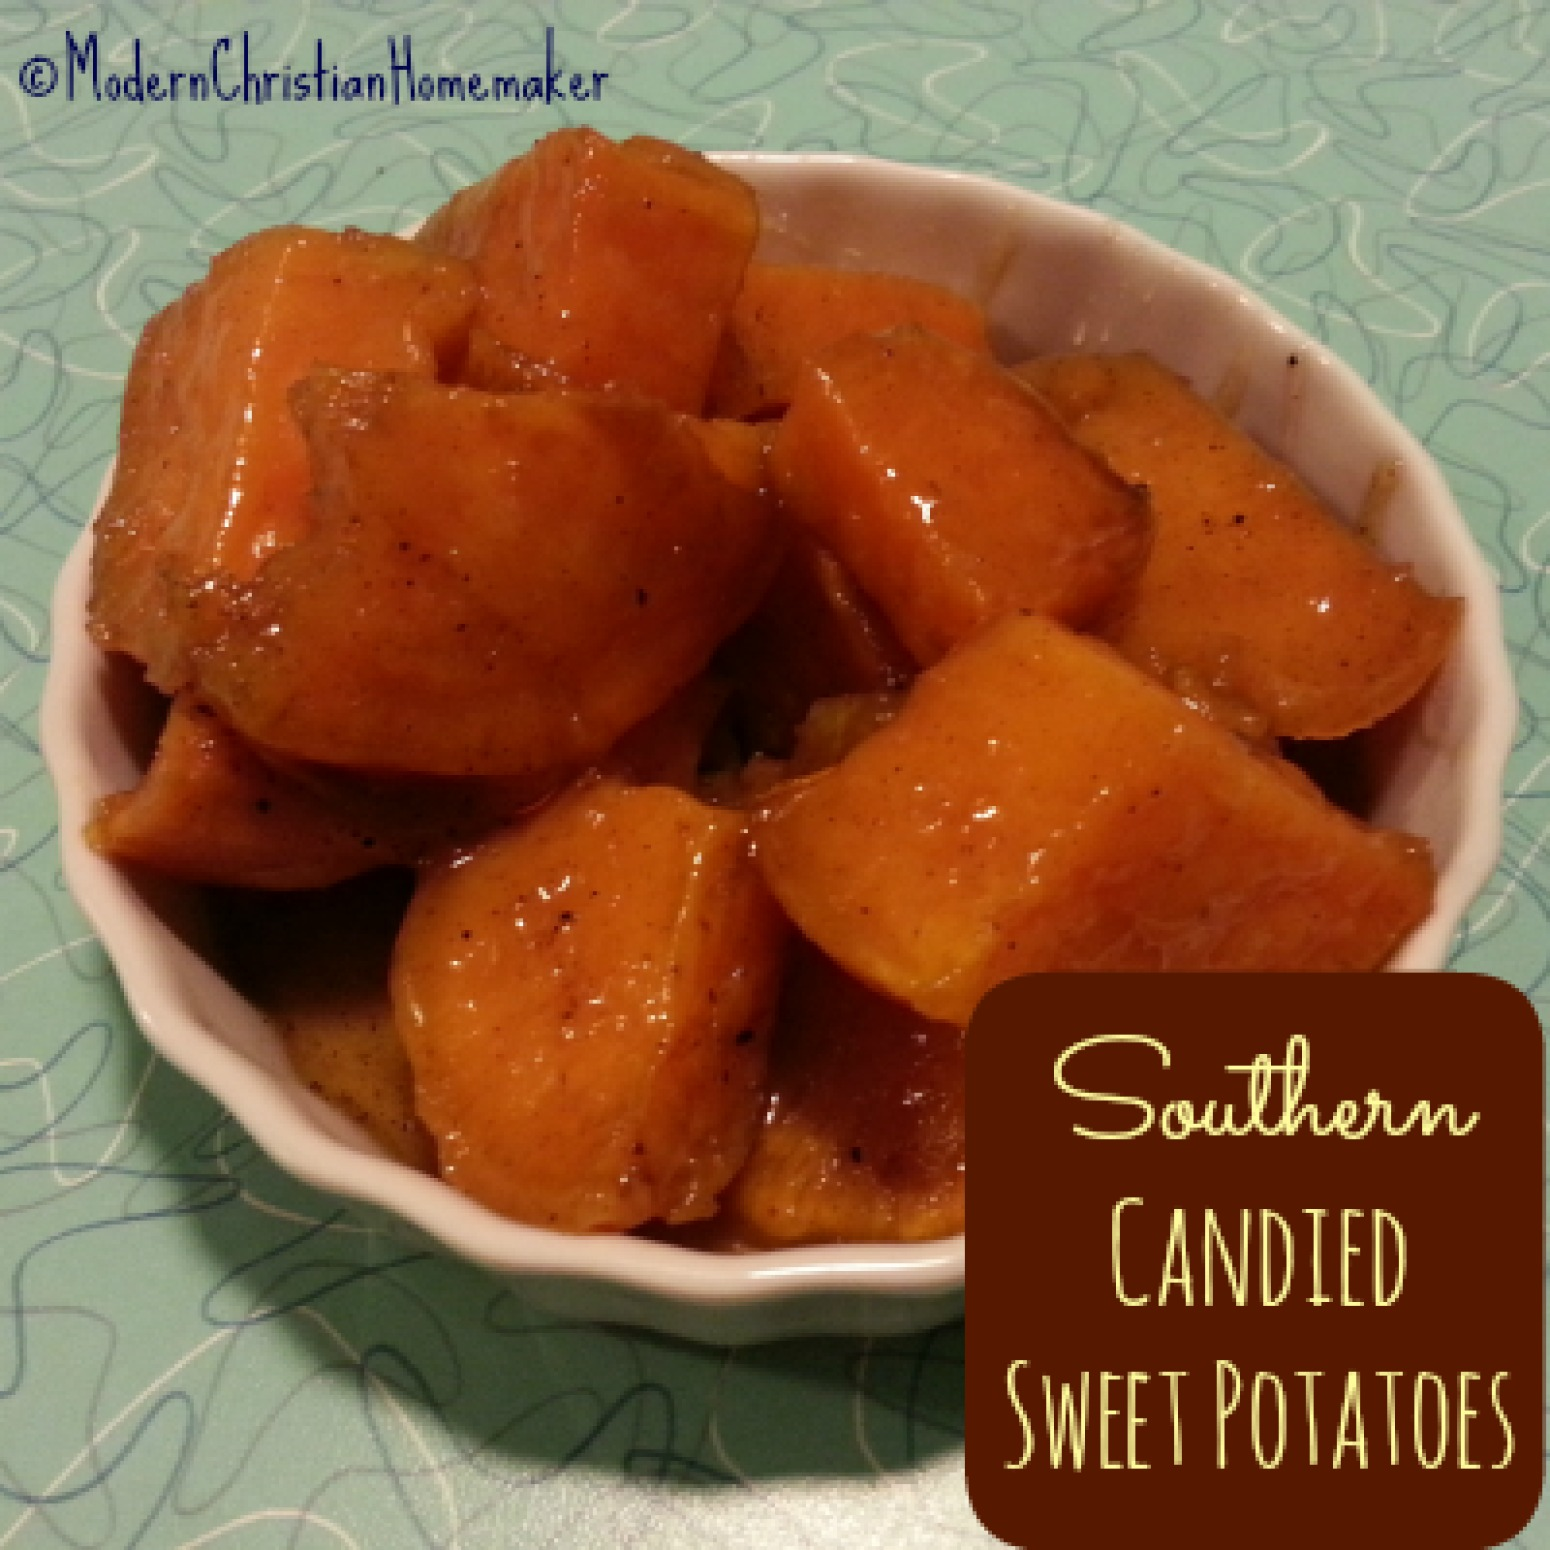 Decadent Southern Candied Sweet Potatoes Recipe | Just A Pinch Recipes